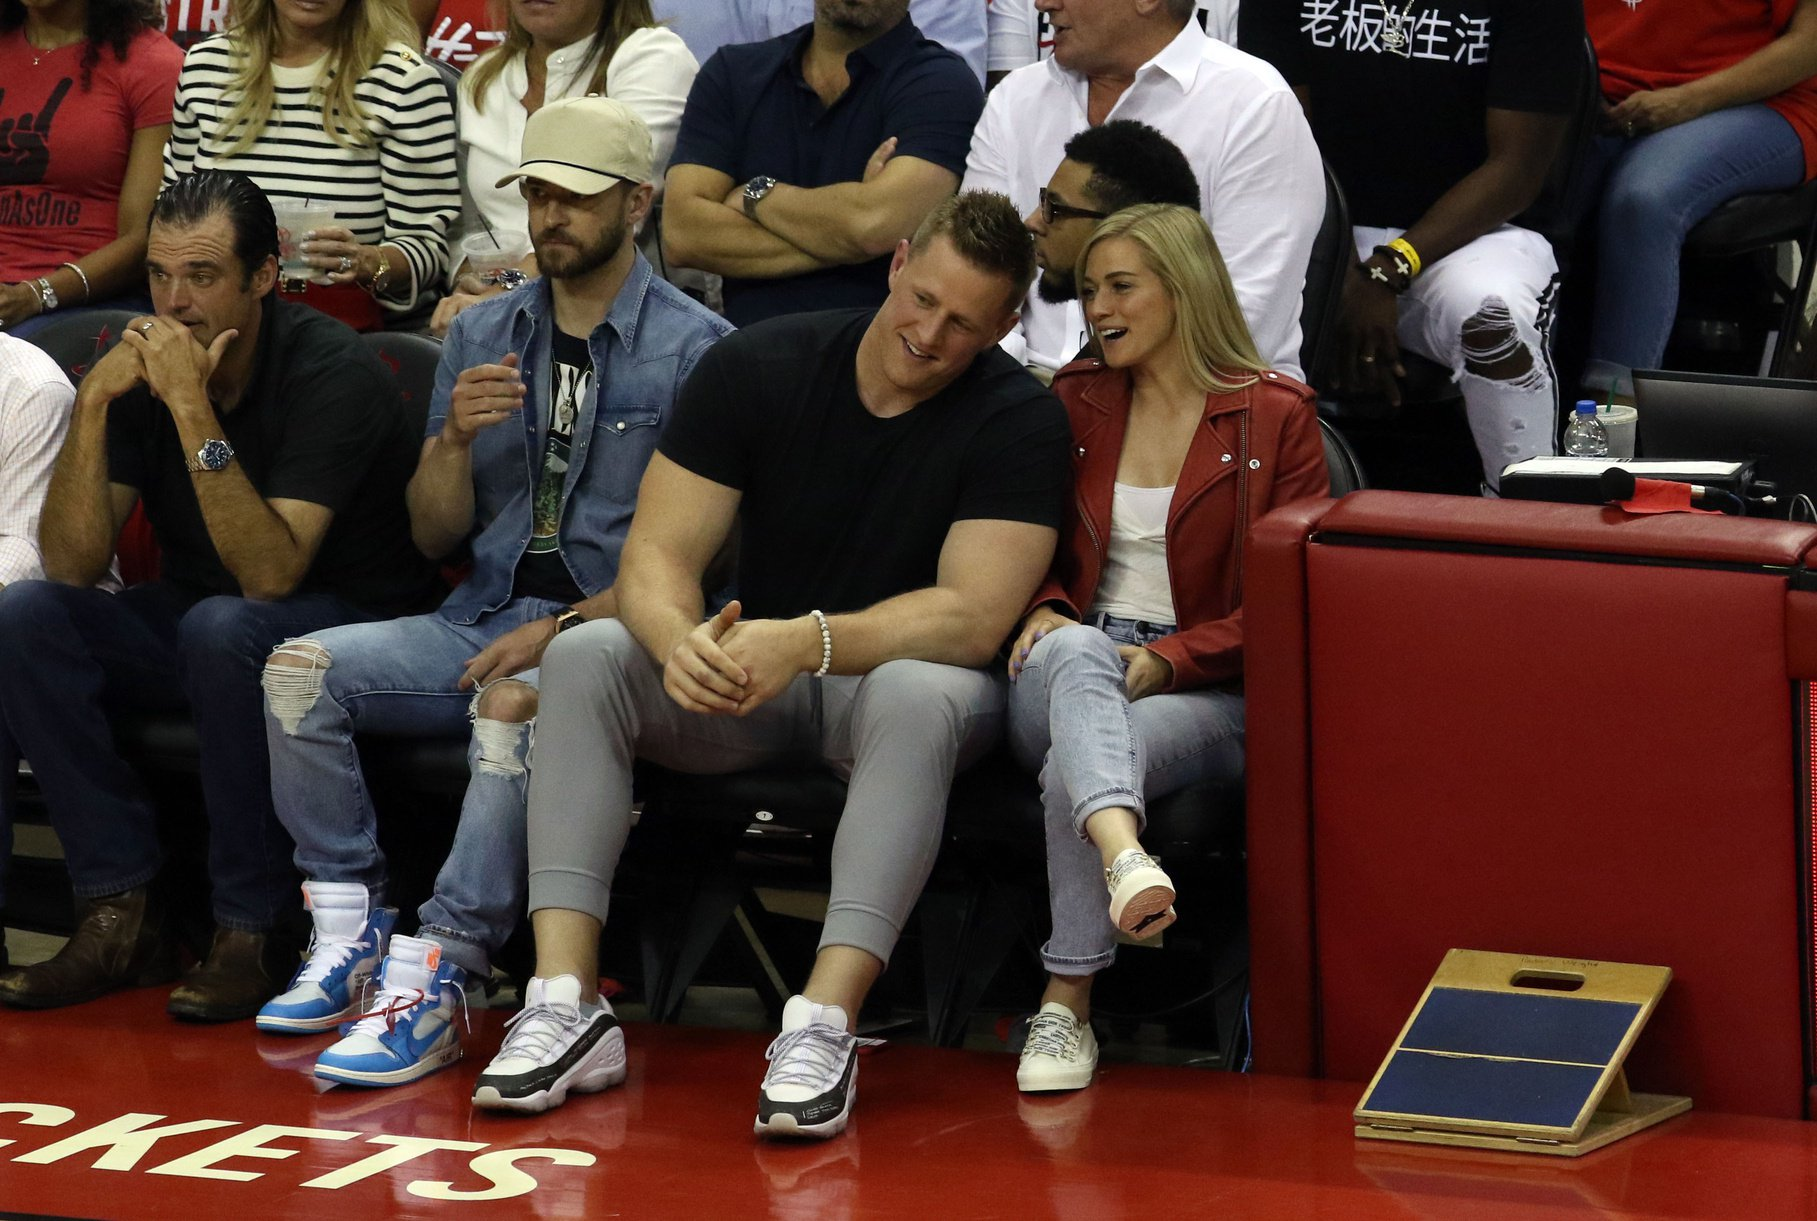 J.J. Watt and Girlfriend Spotted Courtside at Game 5 with Justin Timberlake